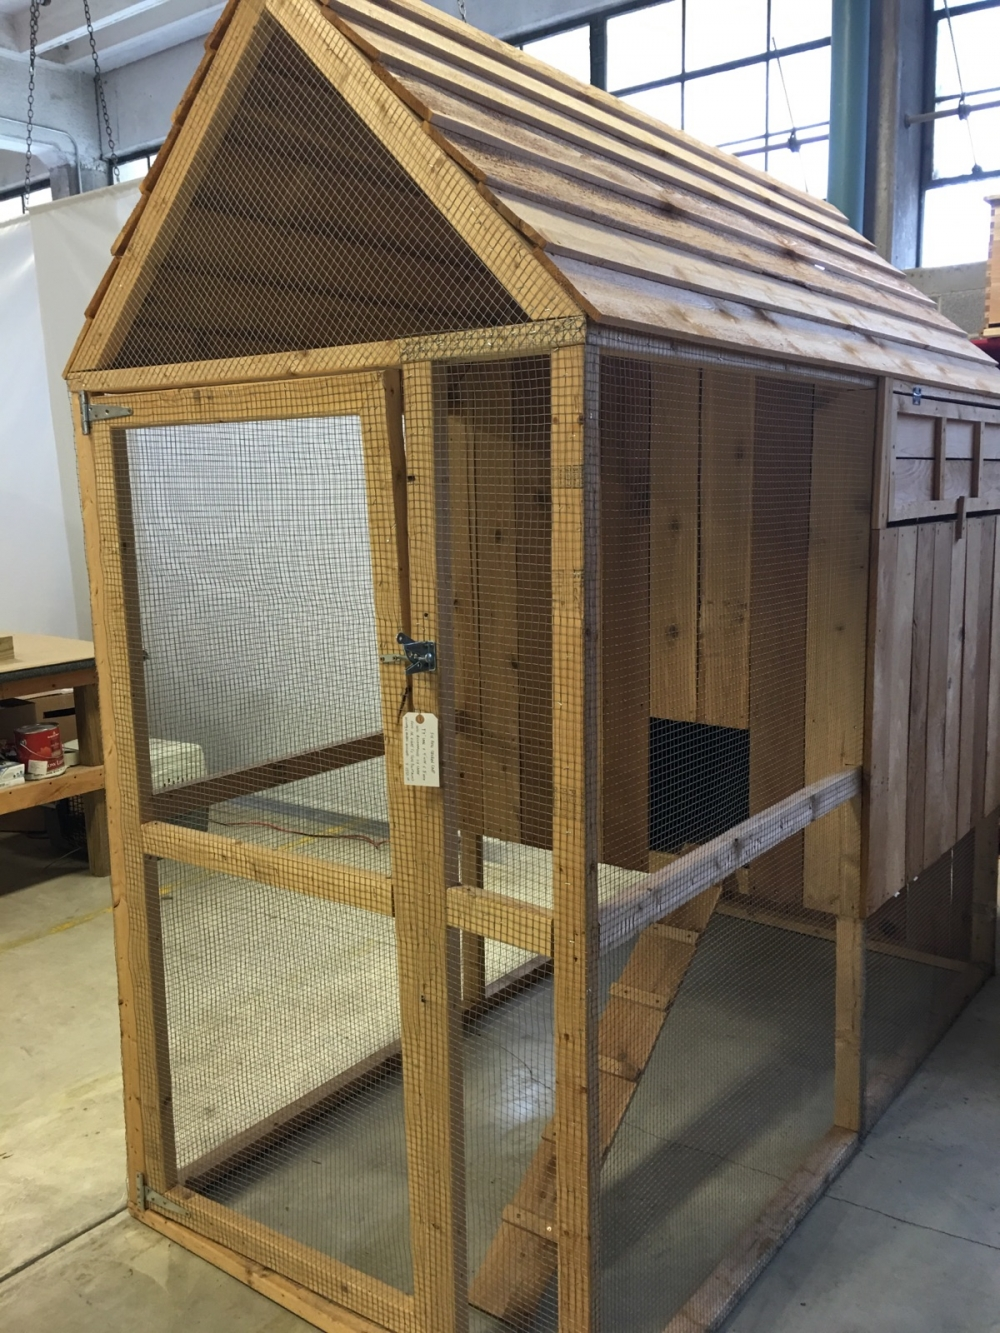 Chicken coop for sale trinity haymarket for Homemade chicken coops for sale